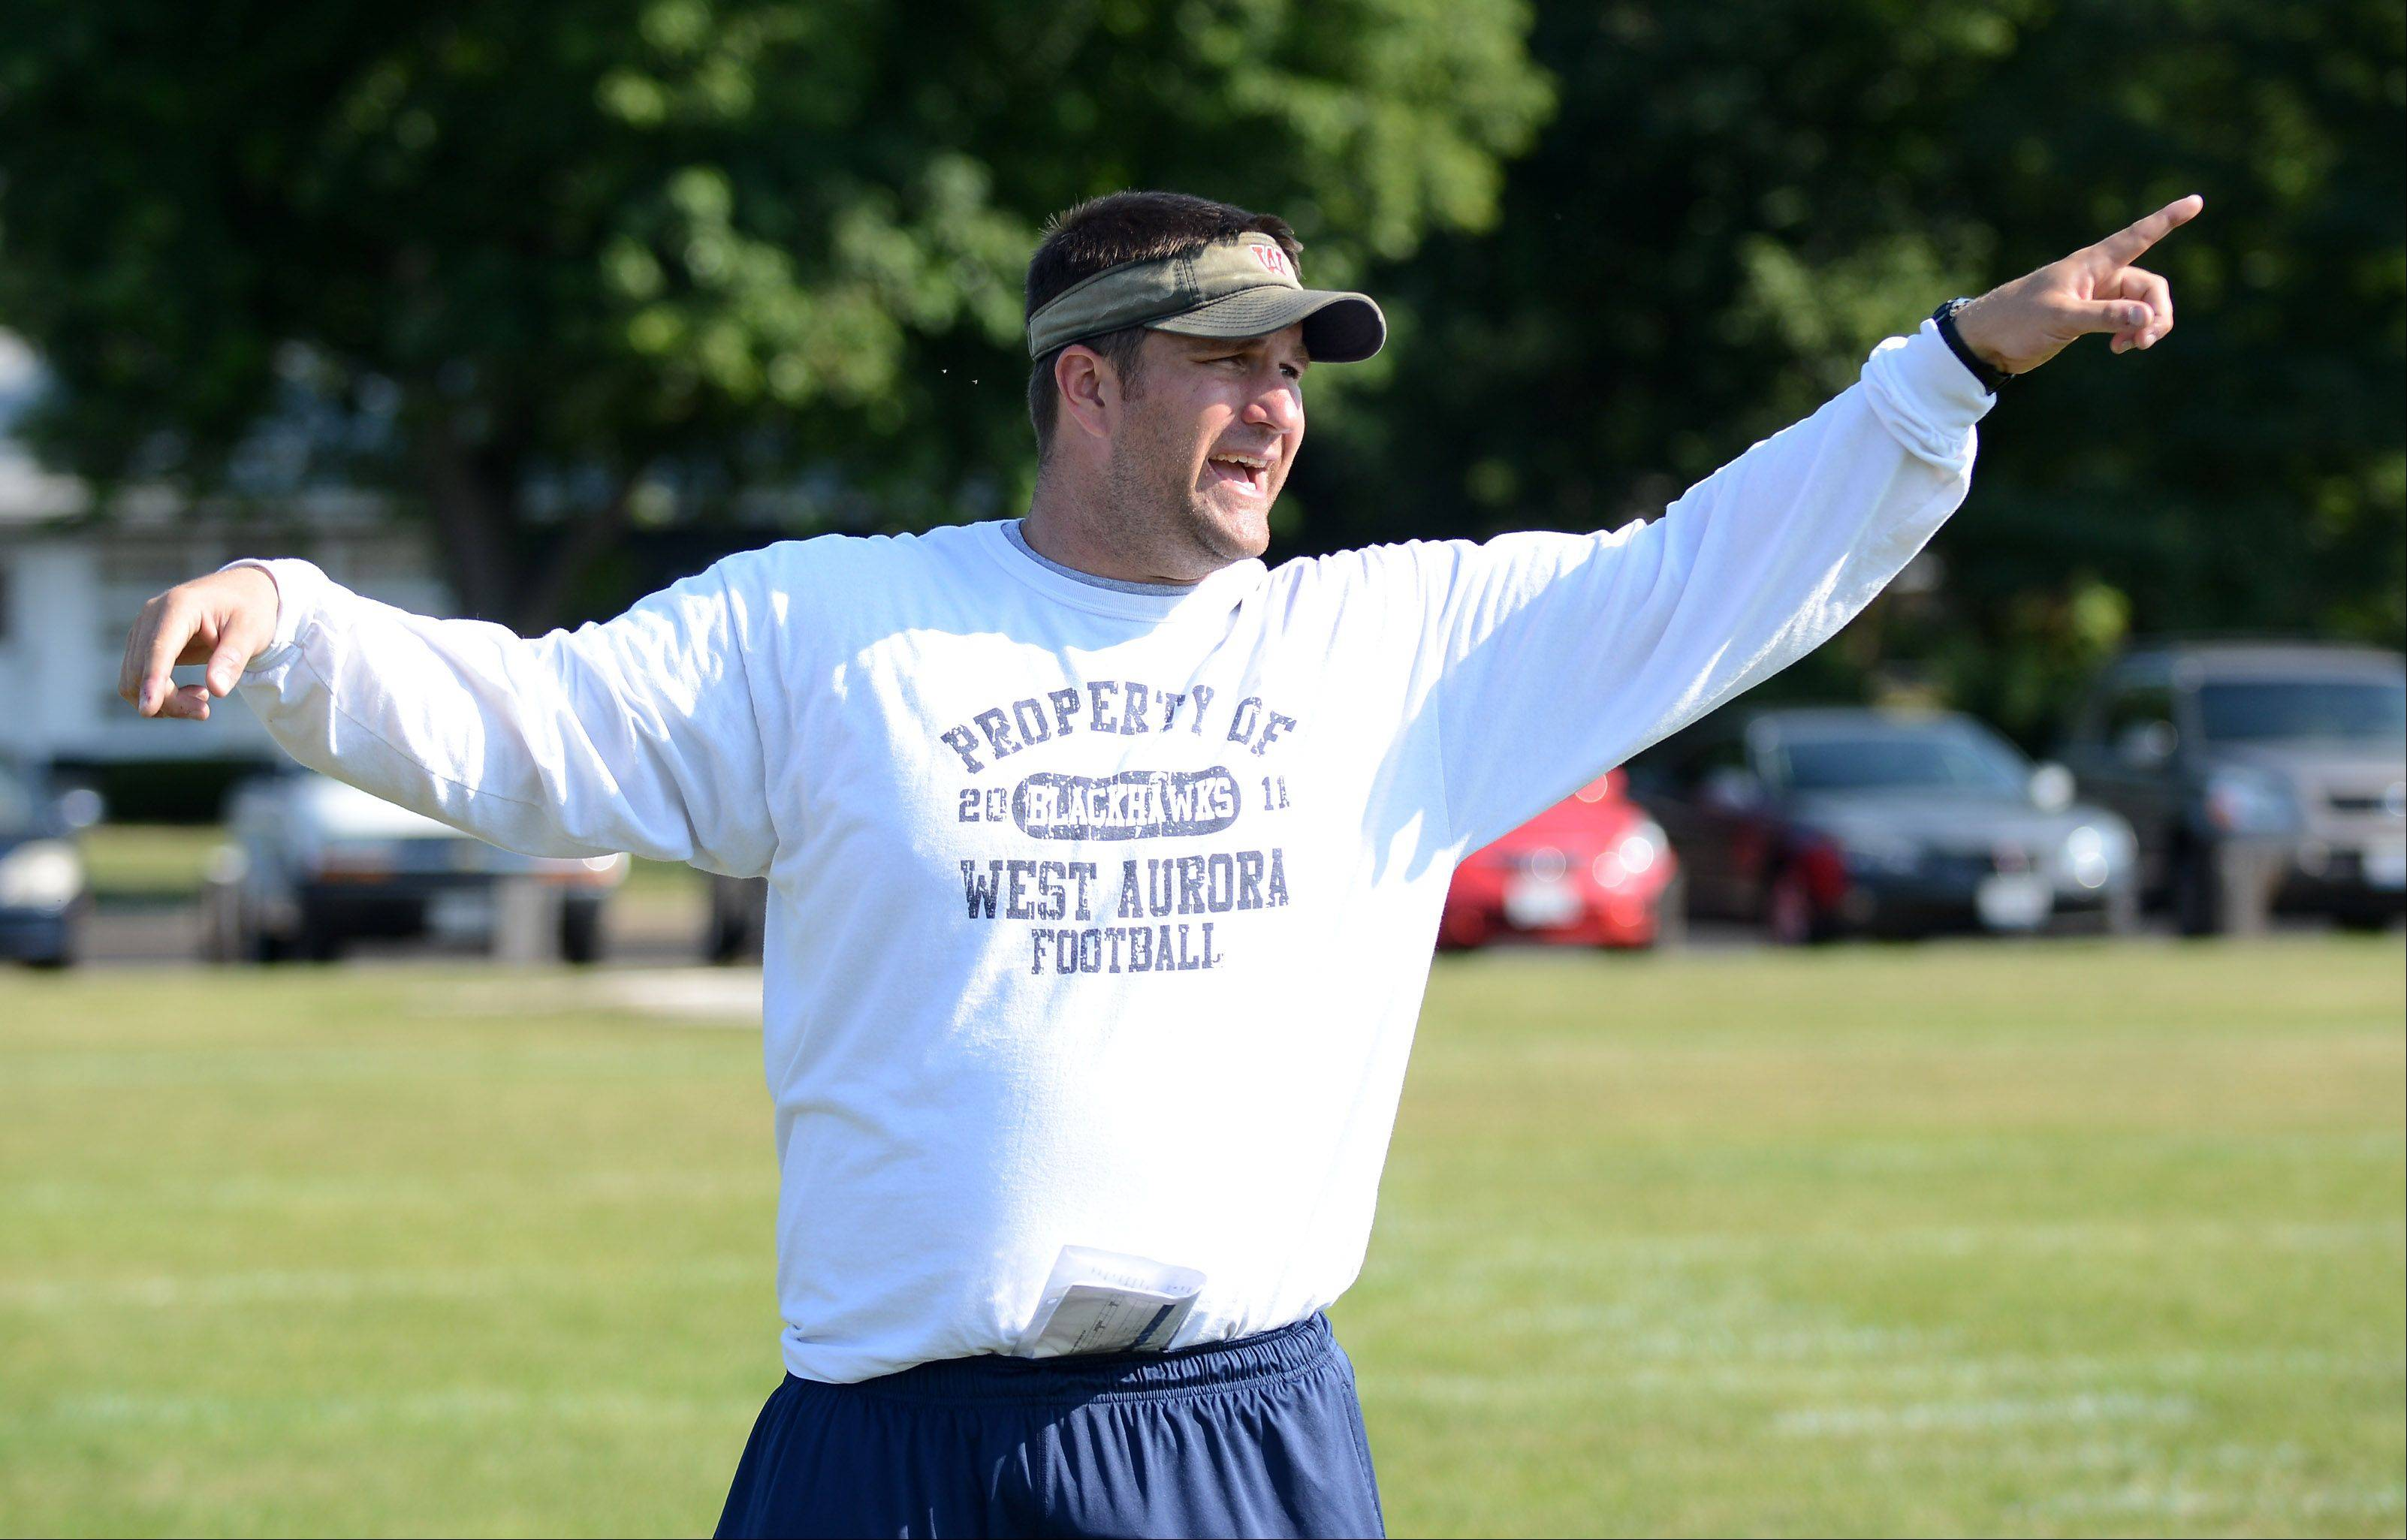 Coach Nate Eimer leads his team during West Aurora football practice Friday.